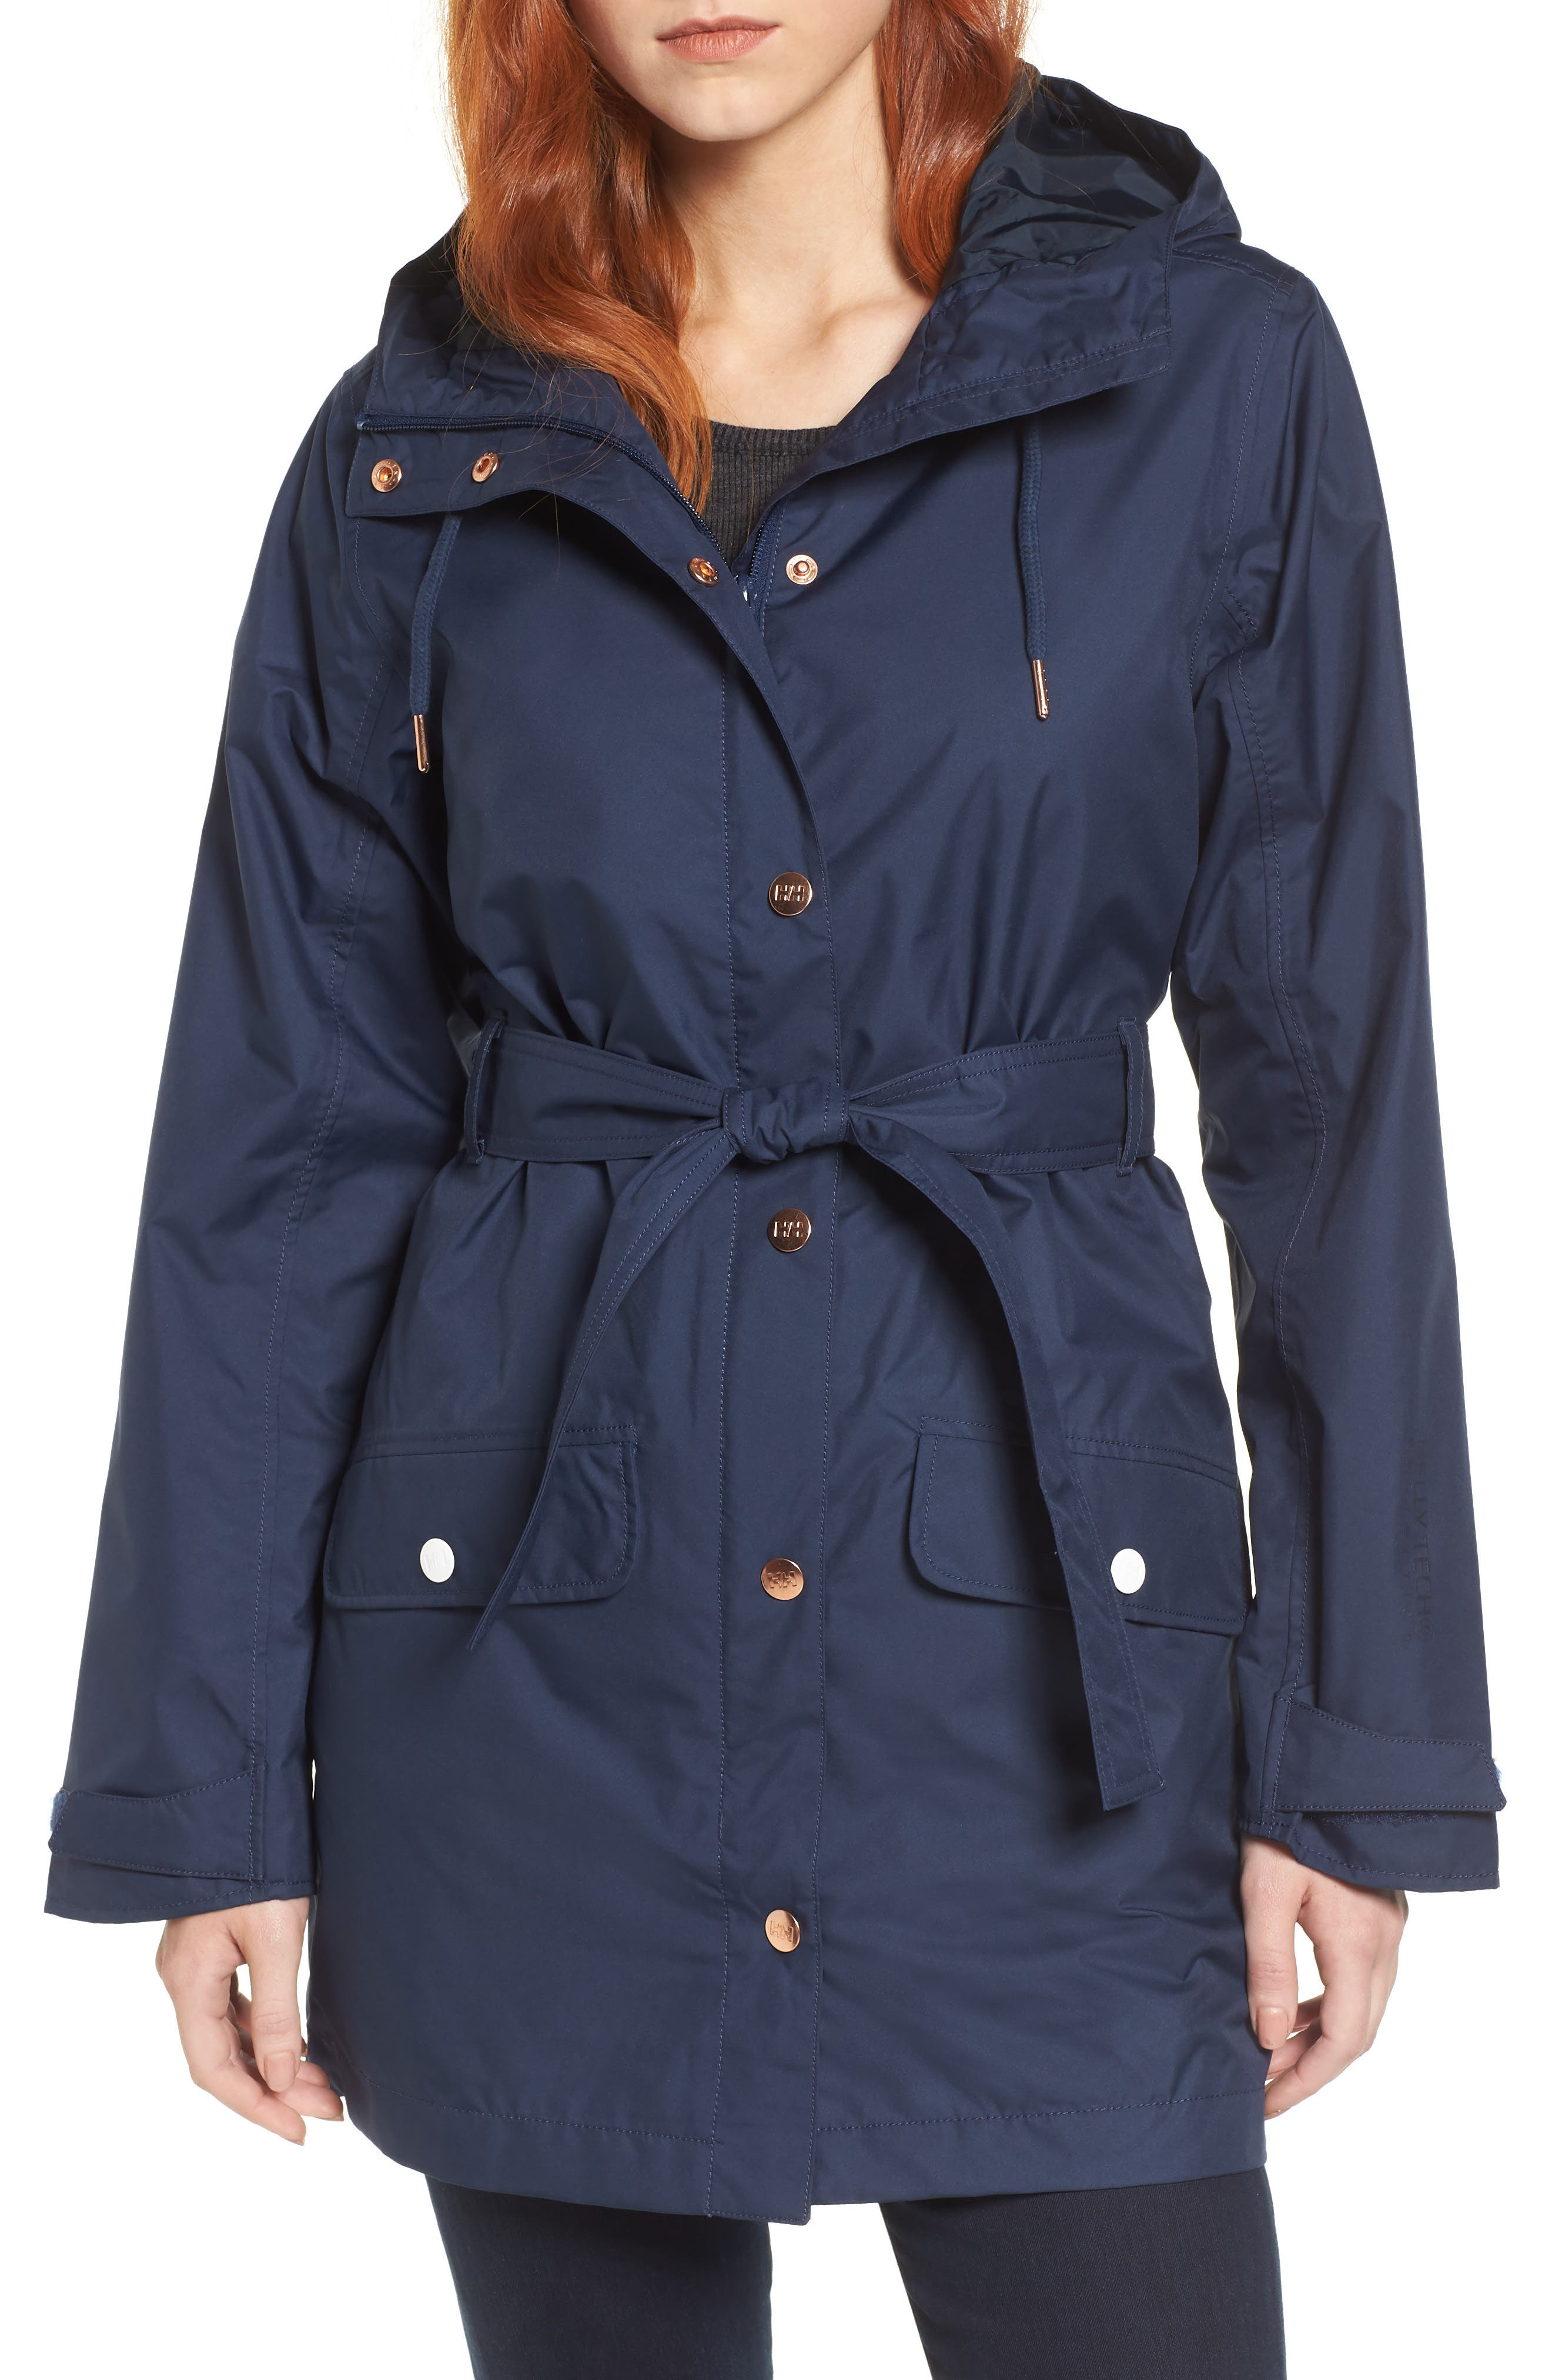 Lyness Rain Jacket,                             Main thumbnail 1, color,                             495